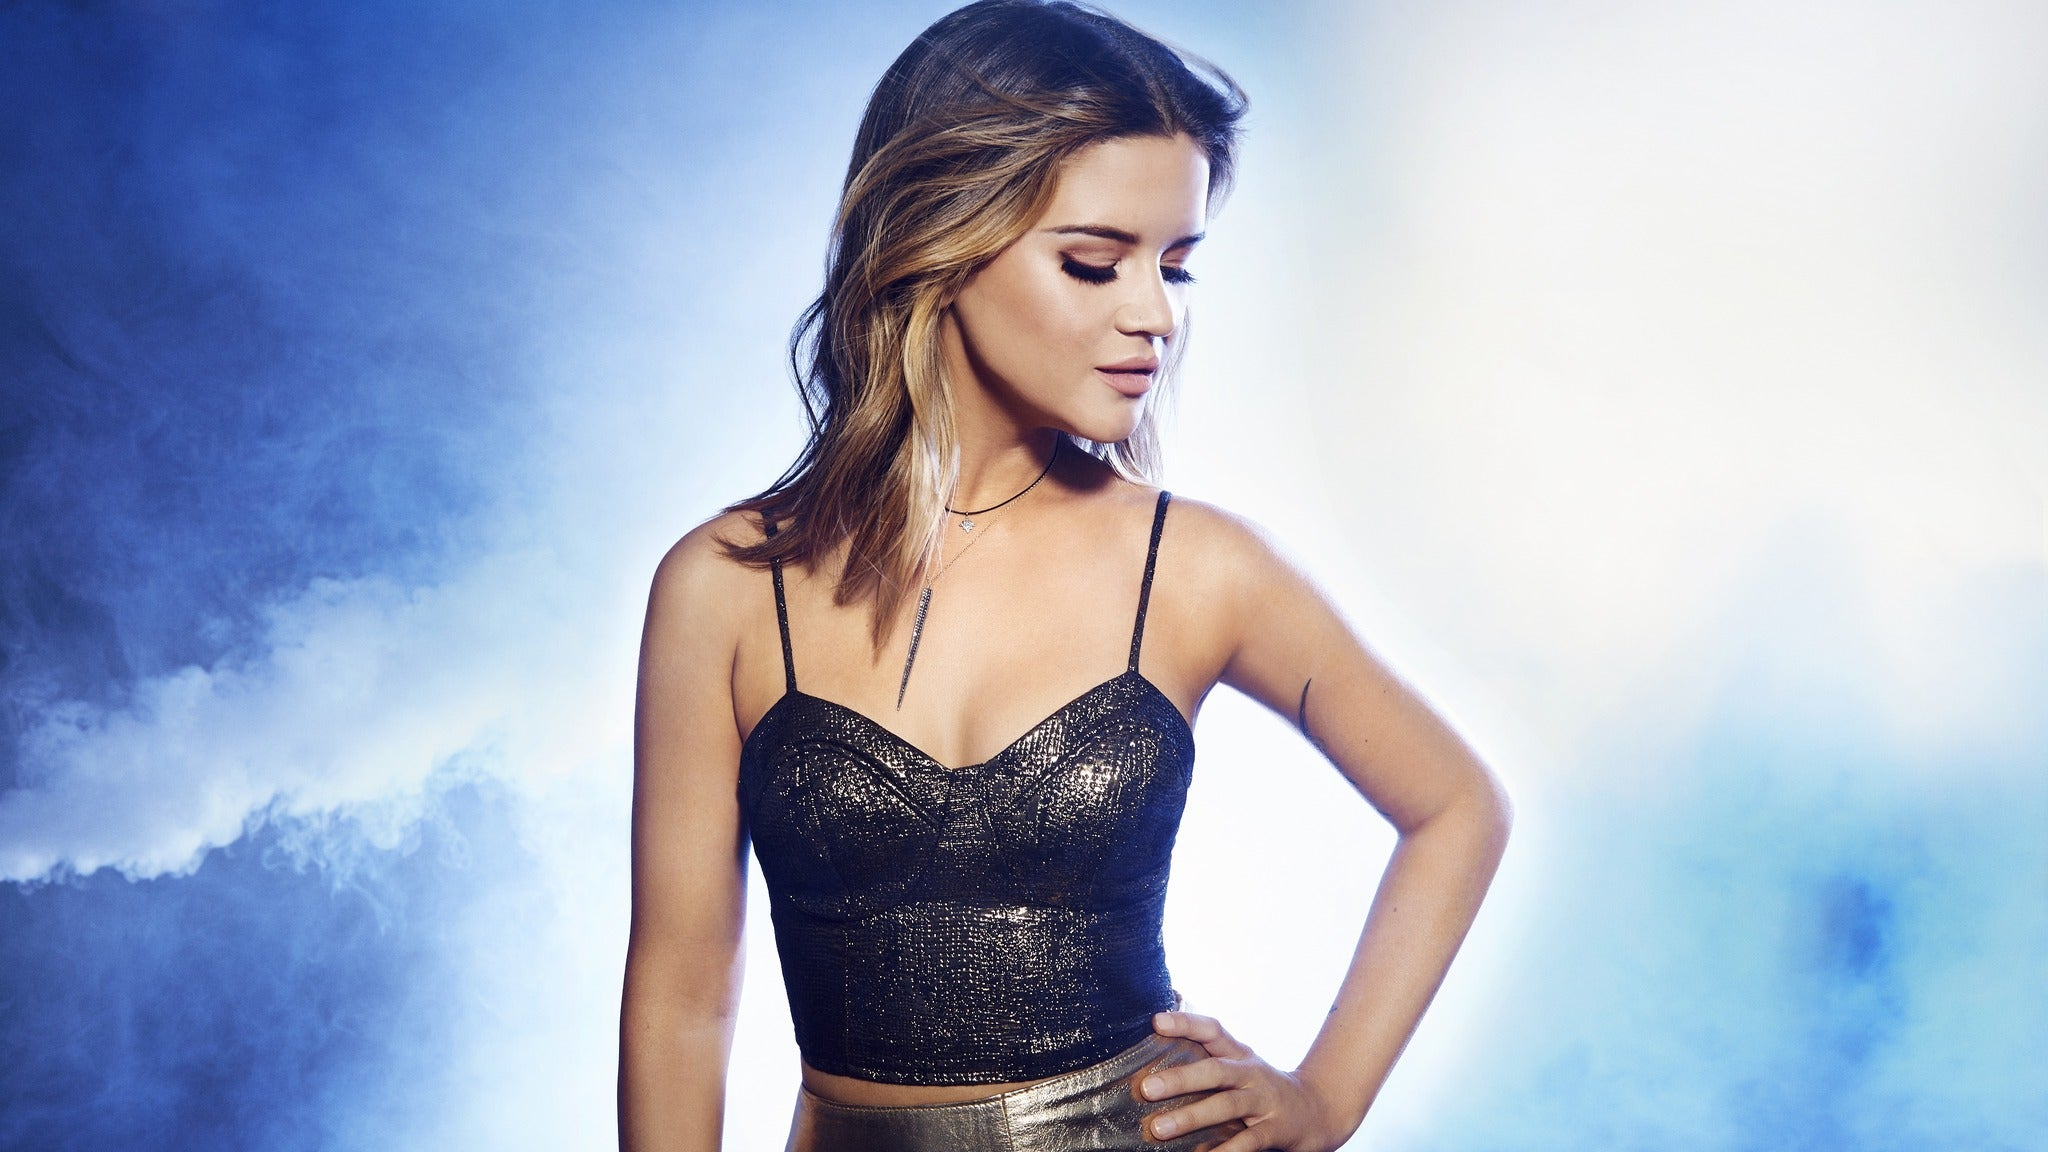 Maren Morris: RSVP The Tour at Ameris Bank Amphitheatre